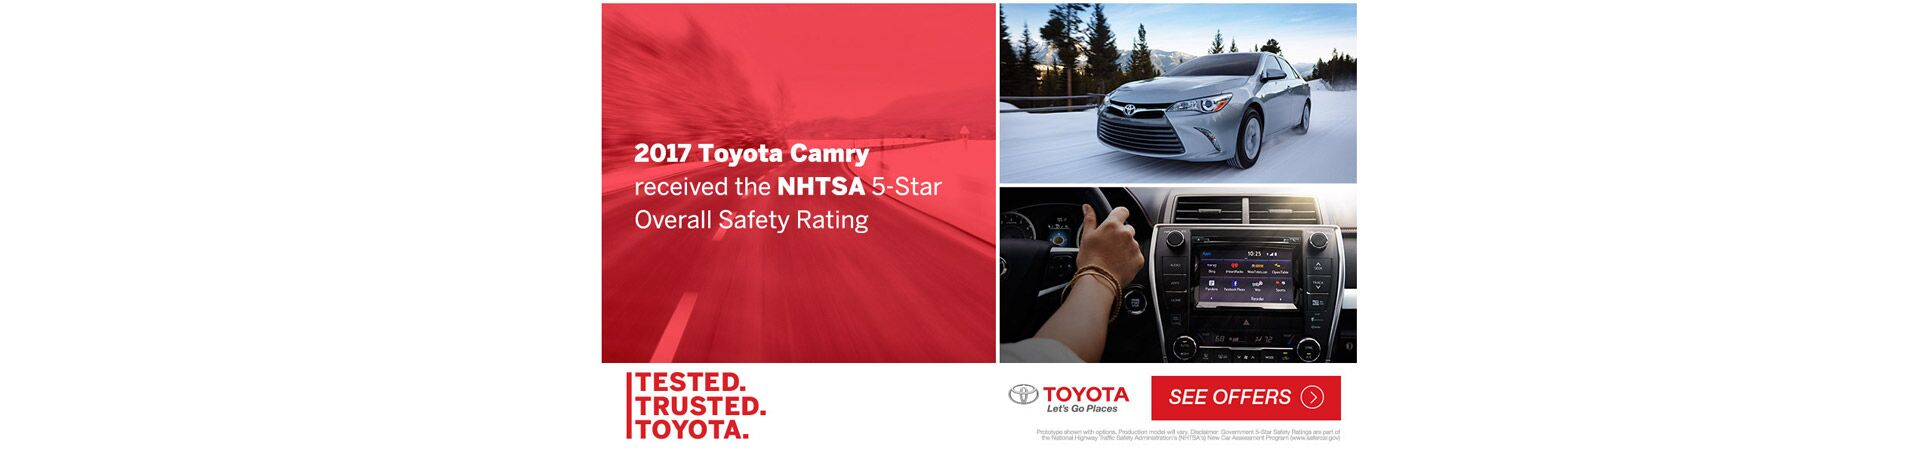 Trusted Toyota Camry